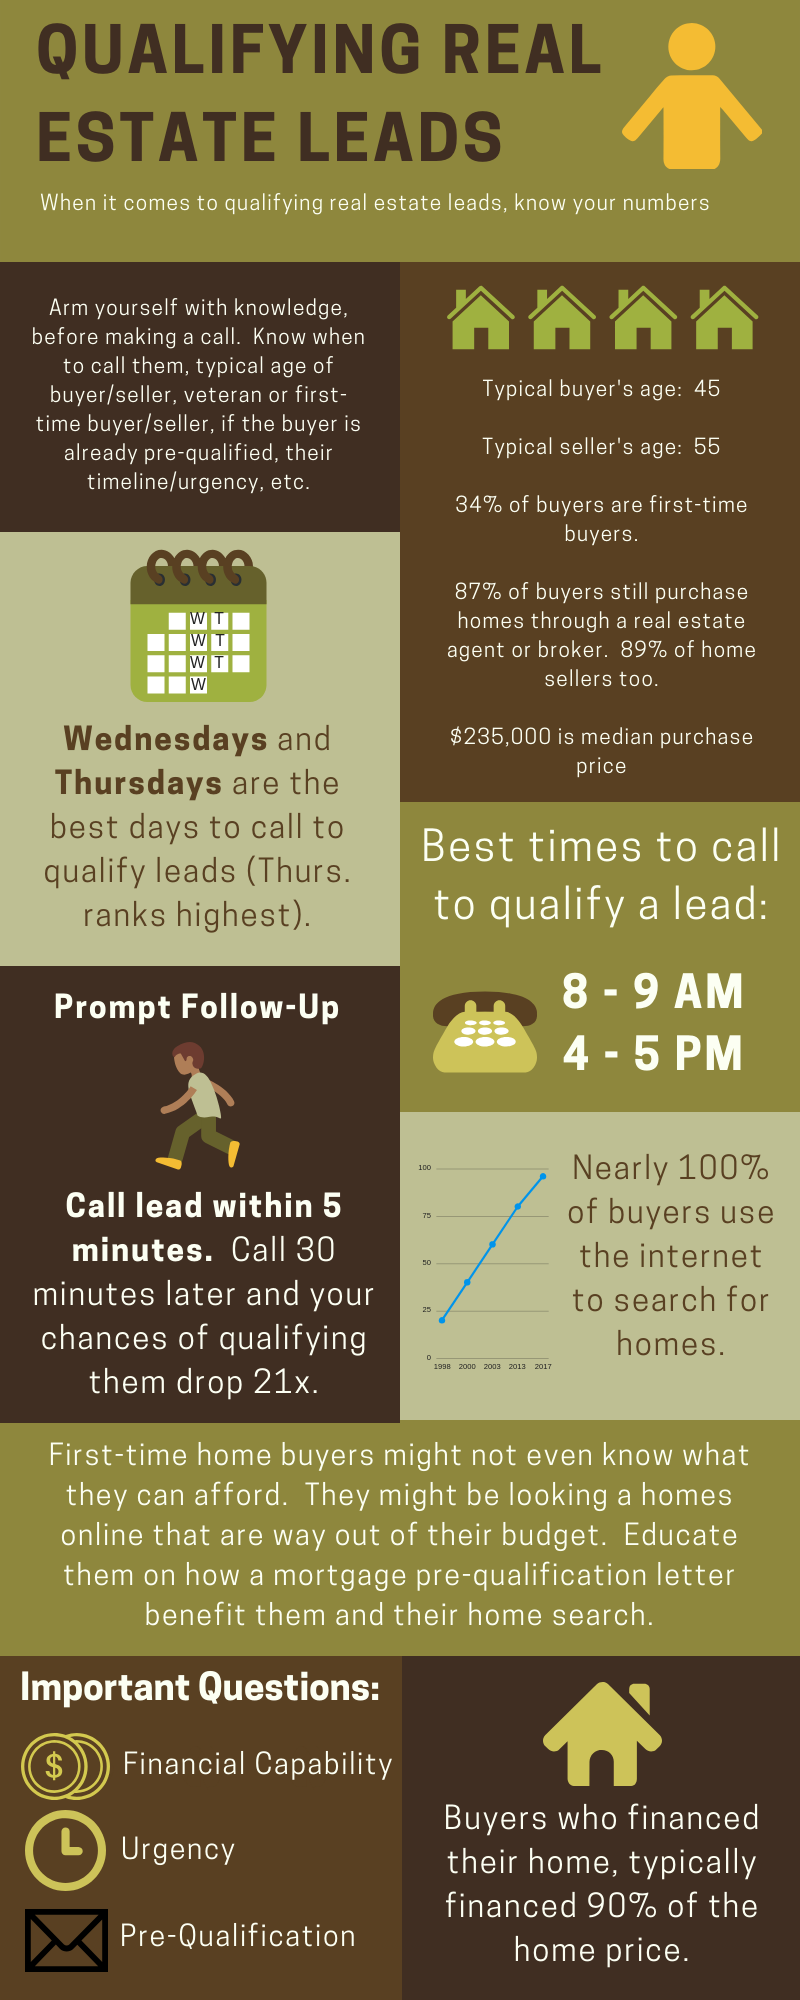 Qualifying Real Estate Leads (1)